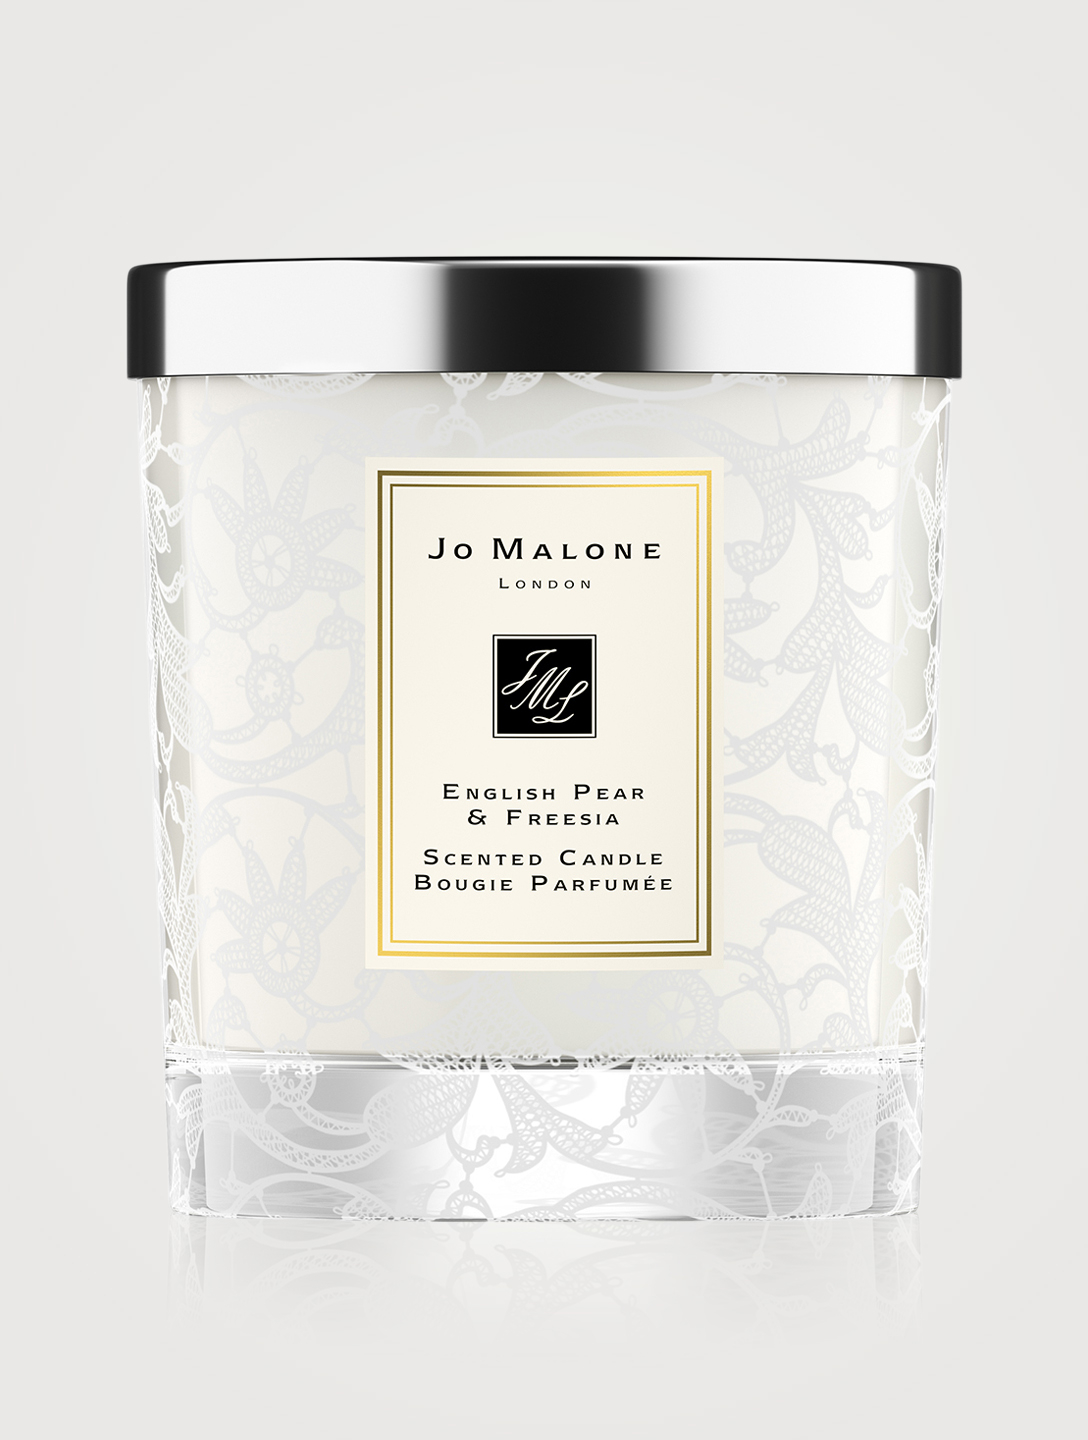 JO MALONE LONDON English Pear & Freesia Home Candle with Lace Design Beauty